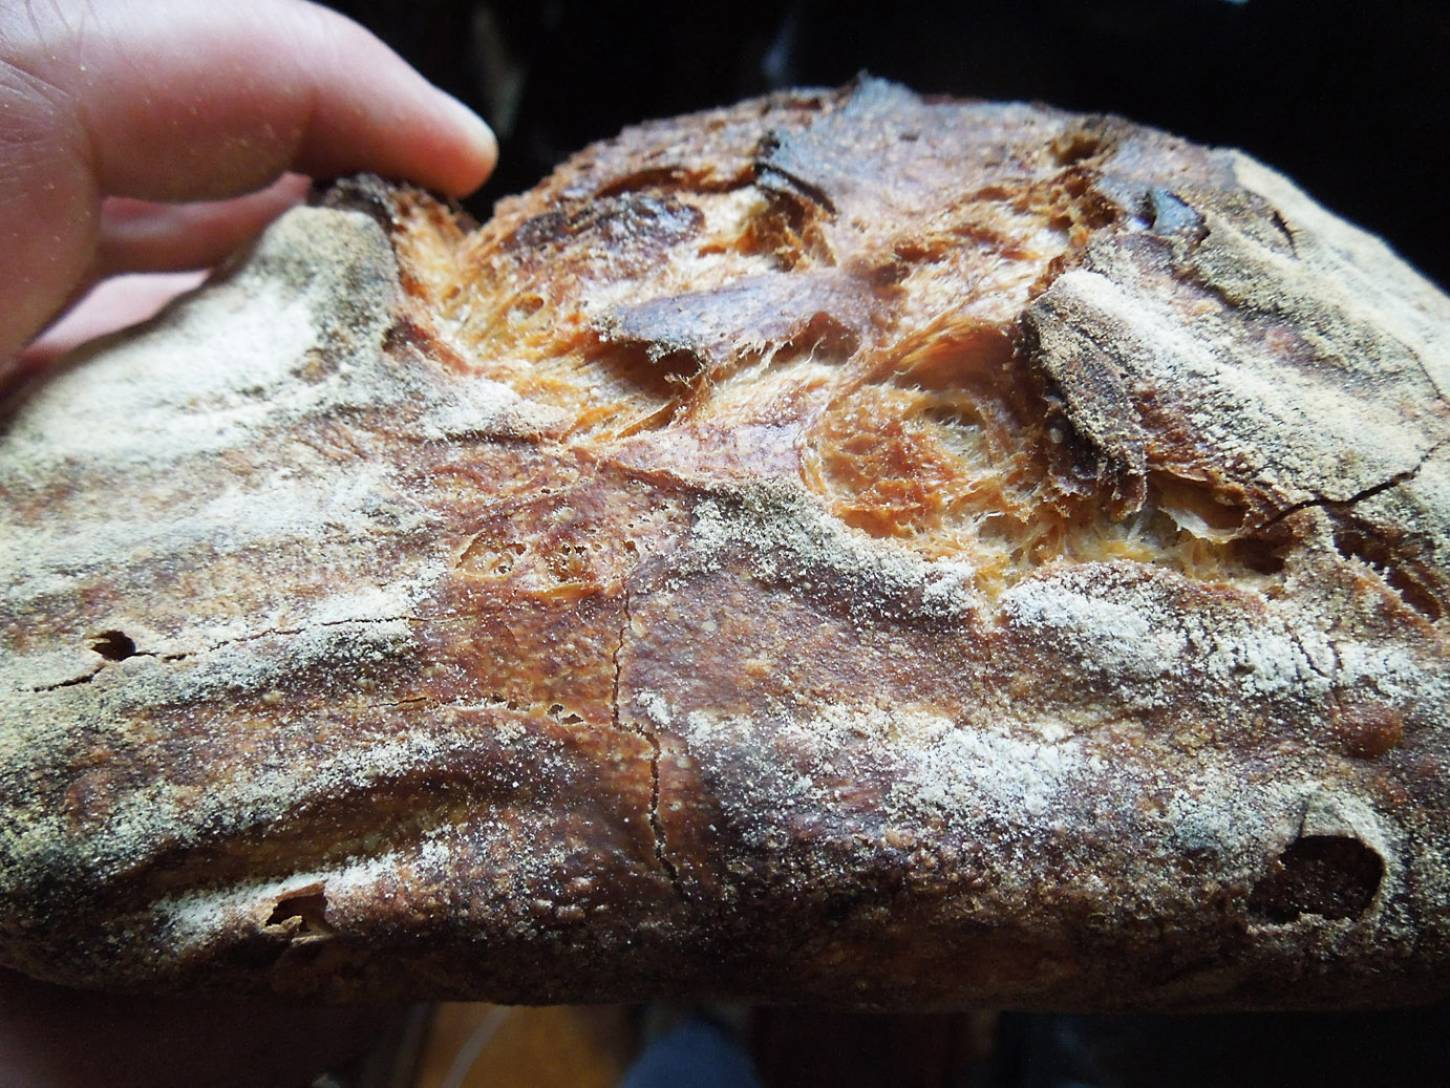 <a href='http://lbpedlar.com/' target='_blank'>LBP</a> white sourdough - 3:51pm&nbsp;14<sup>th</sup>&nbsp;Dec.&nbsp;'16